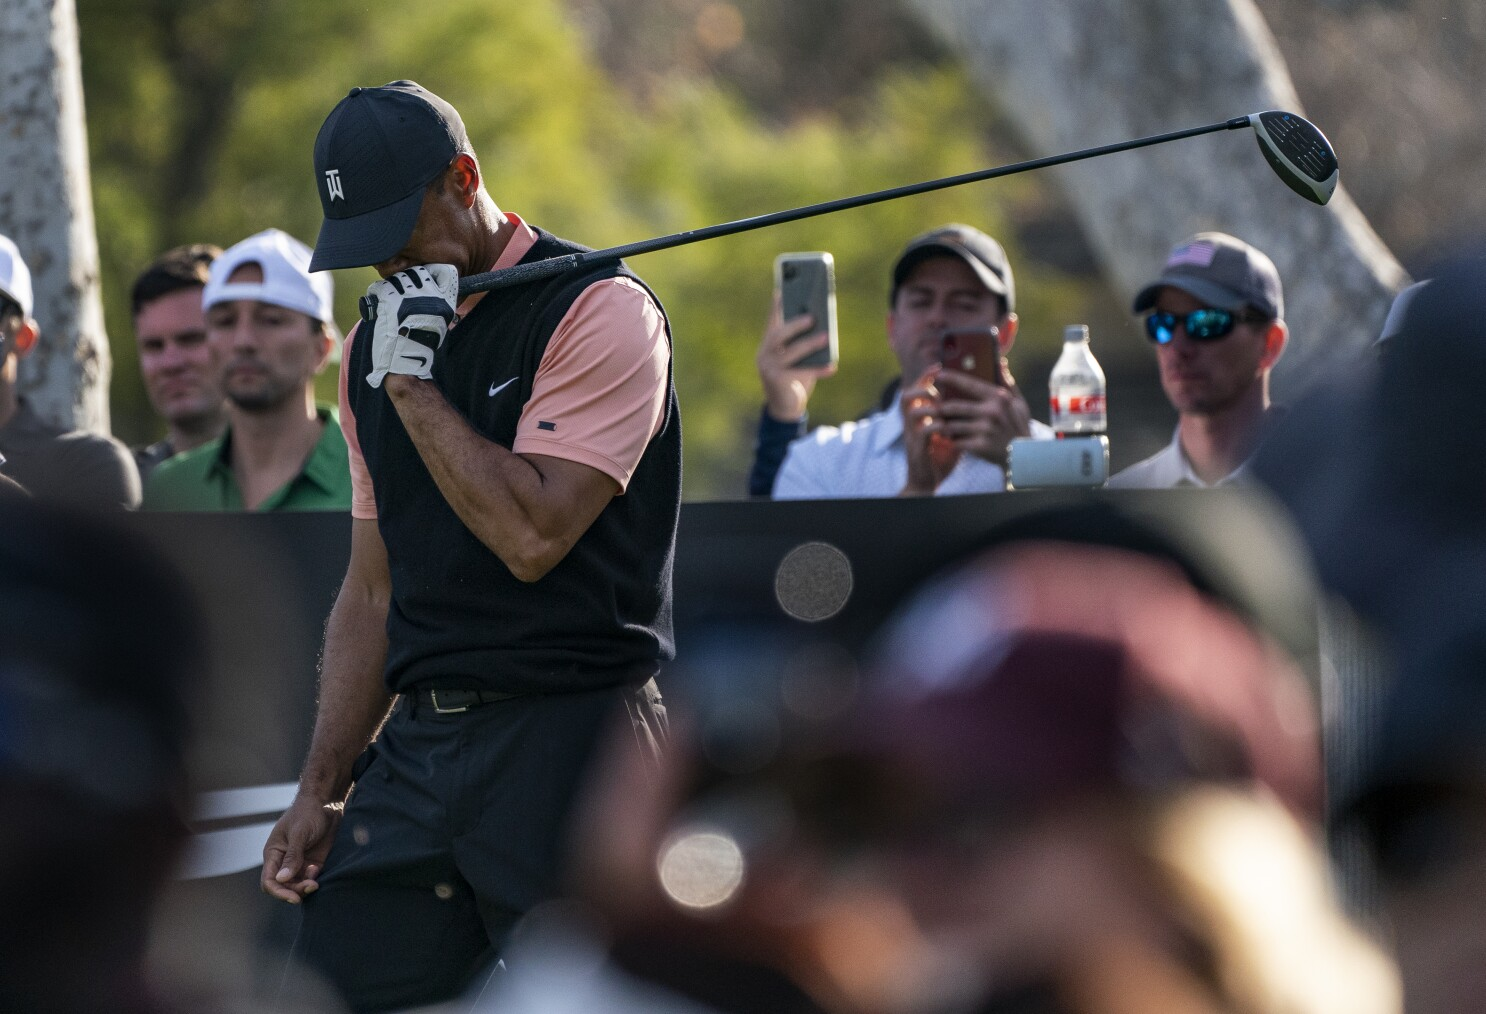 Golf Roundup Tiger Woods Still Not Ready Will Miss The Players Championship Los Angeles Times